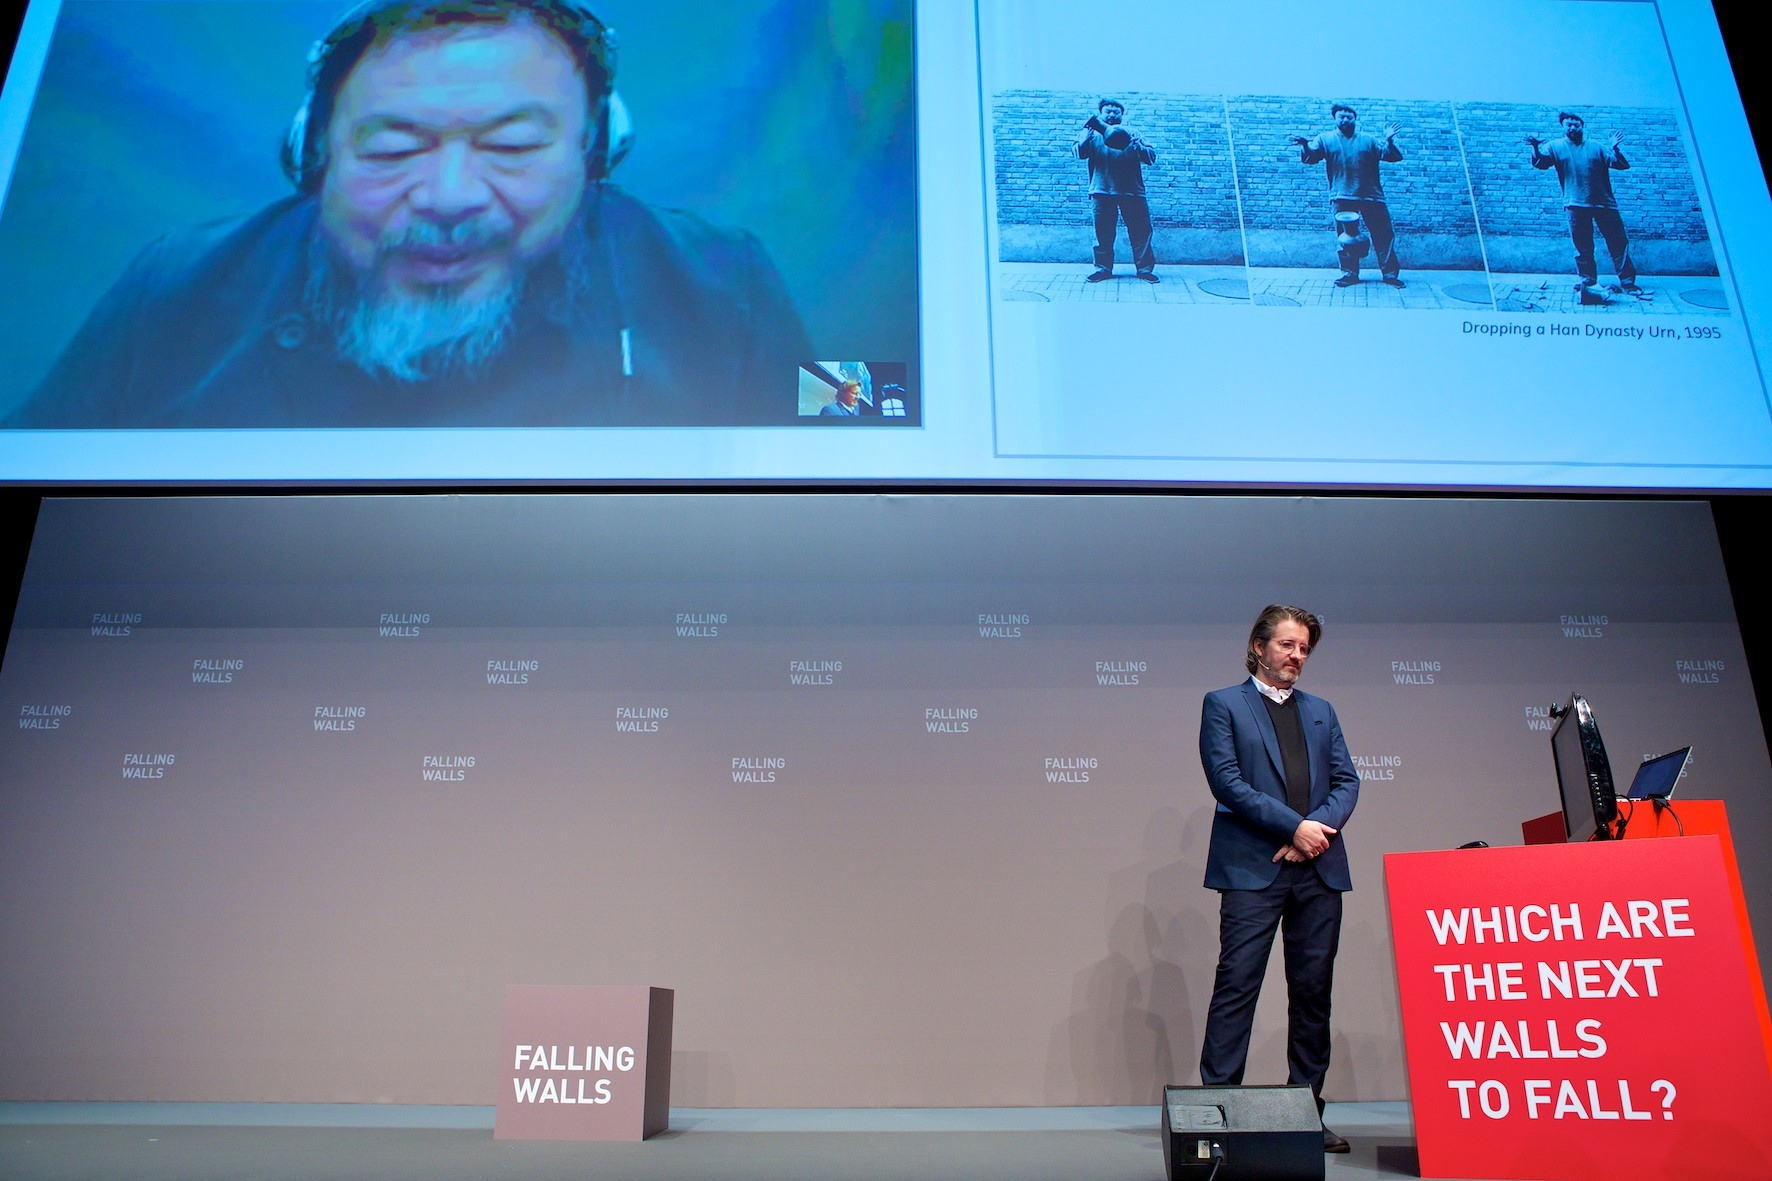 Photo Kay Herschelmann, courtesy fondation Falling Walls